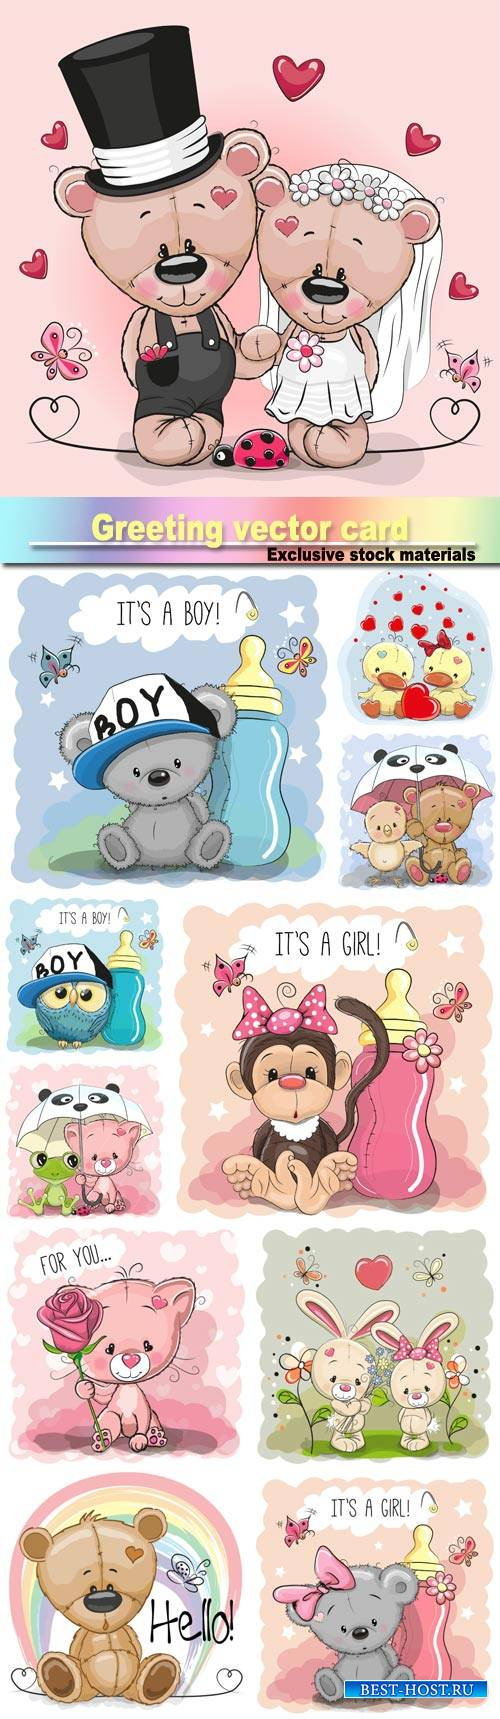 Greeting card cute, cartoon bear girl, monkey, teddy bride and teddy groom, ...